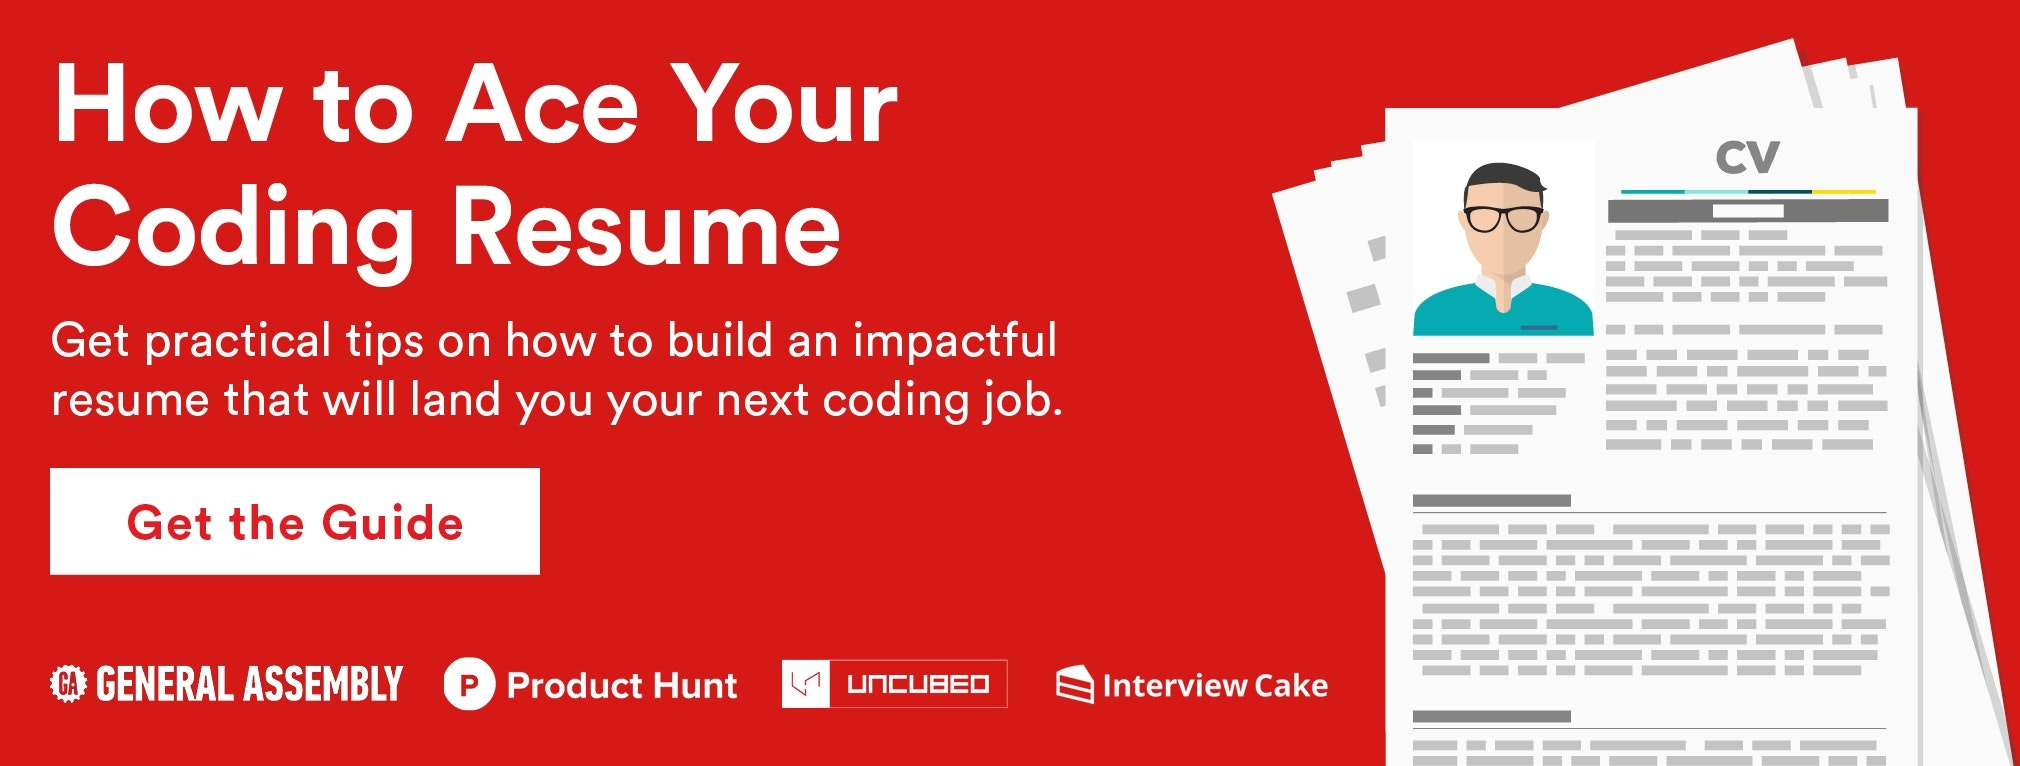 how to ace your coding resume product hunt